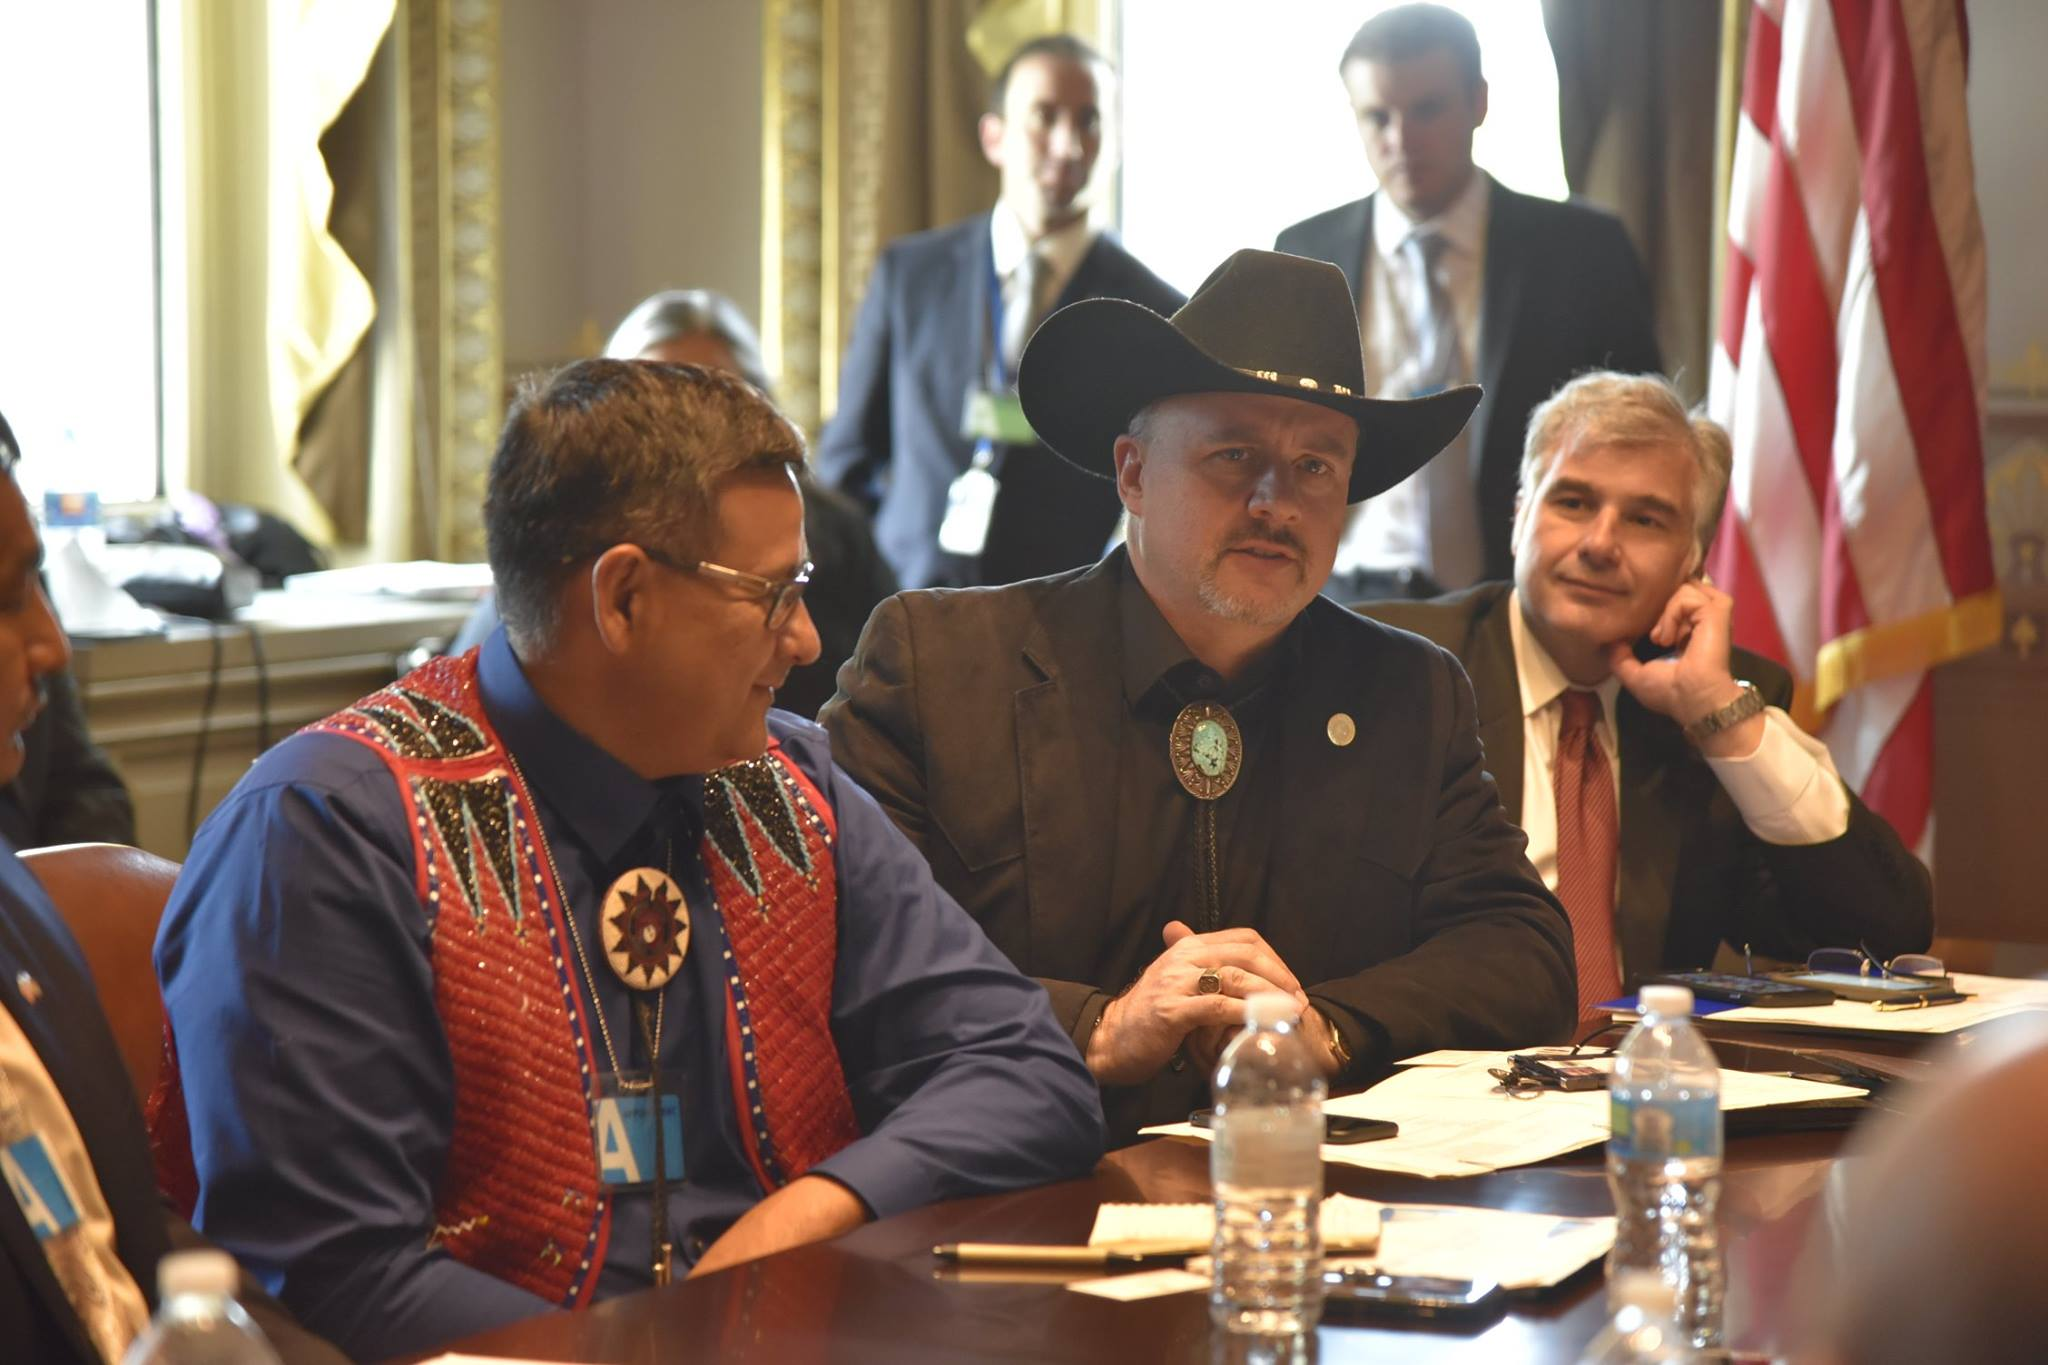 Secretary Zinke announces senior position at Bureau of Indian Affairs